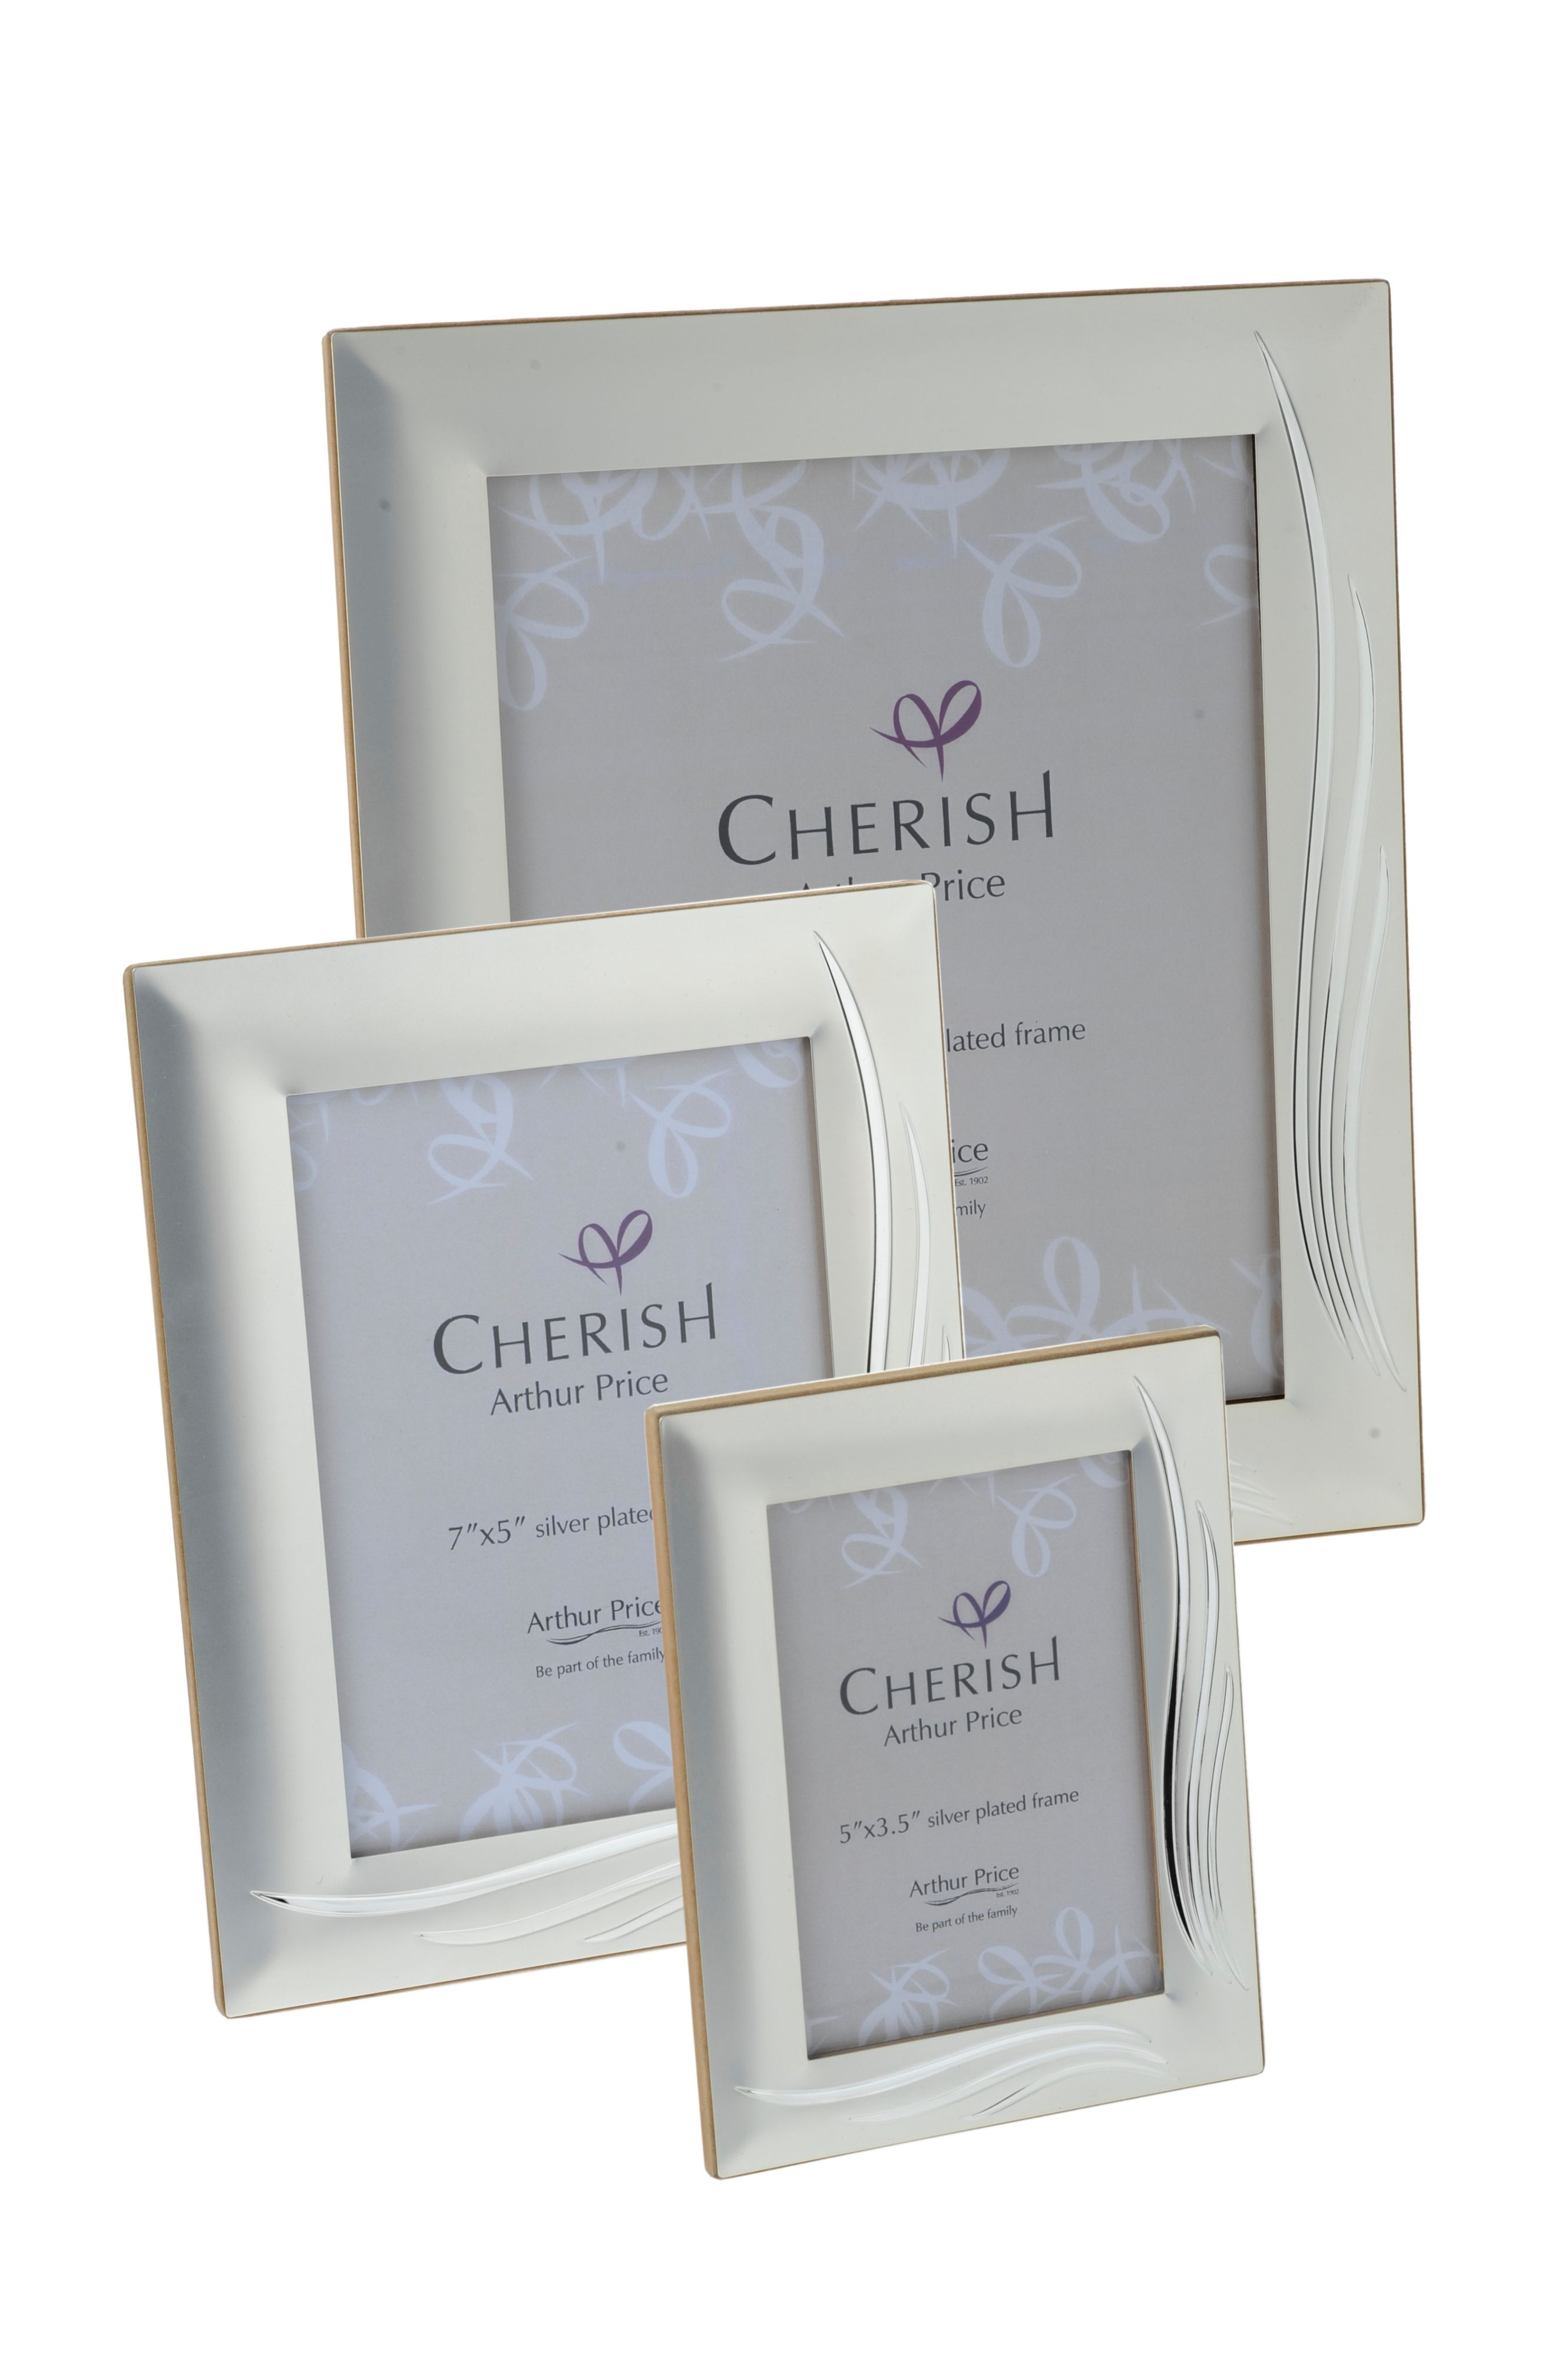 Silver plated 7 x 5 Weston photograph frame